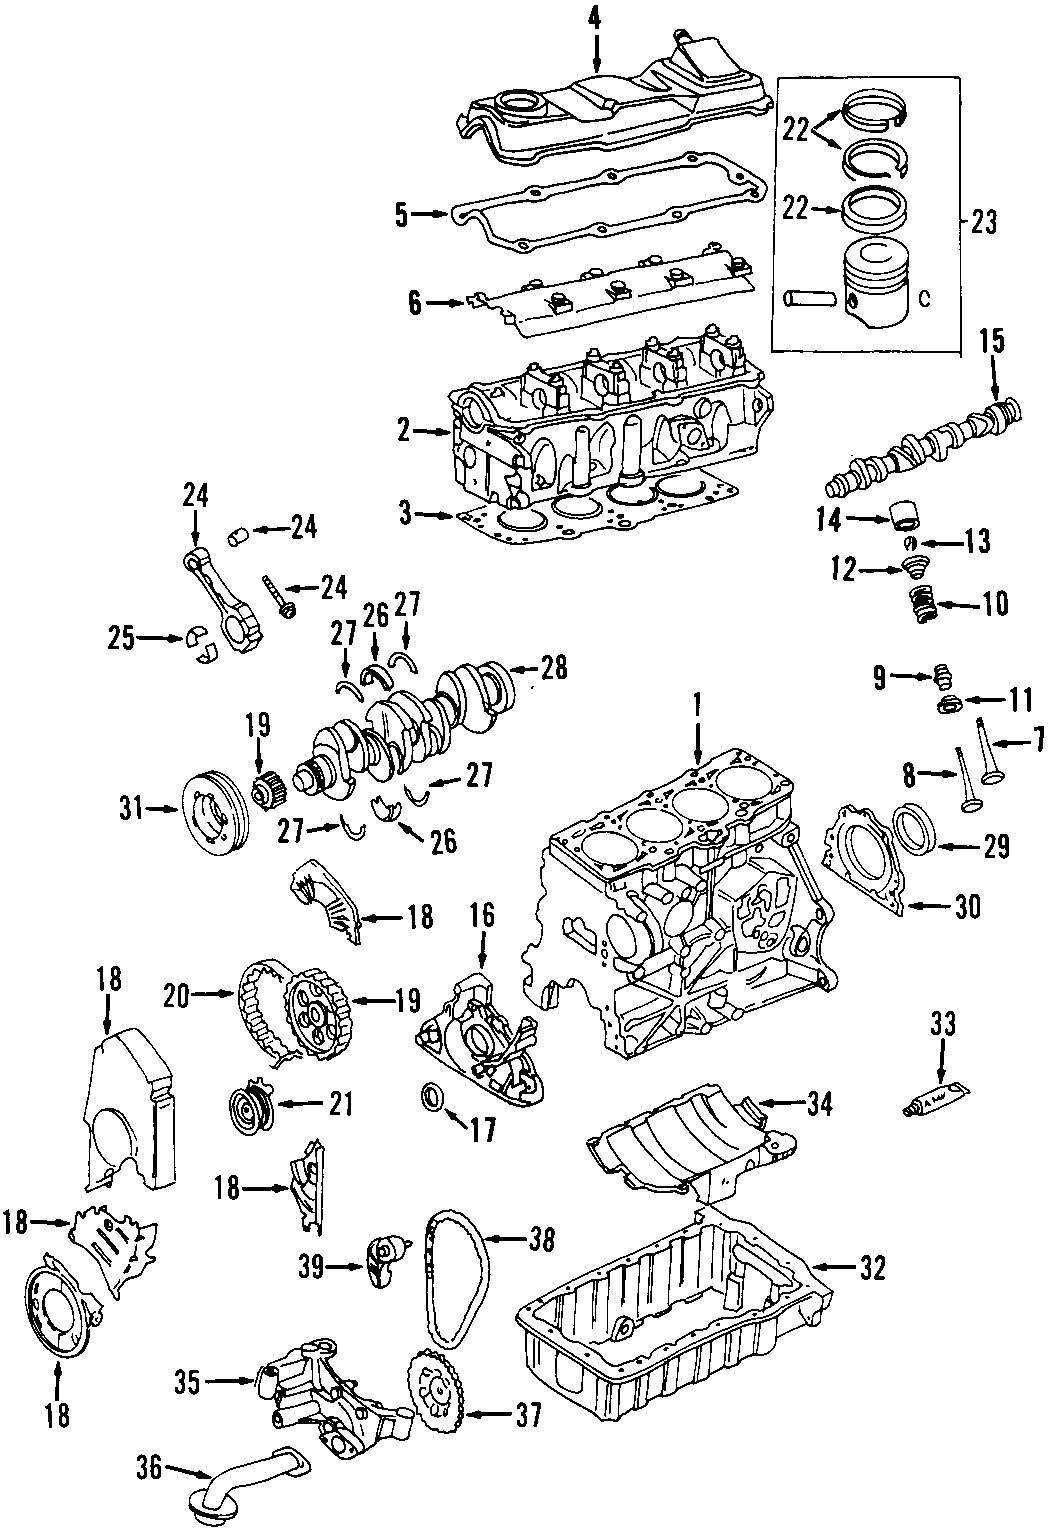 Volkswagen Beetle Engine Timing Chain Along Bearings